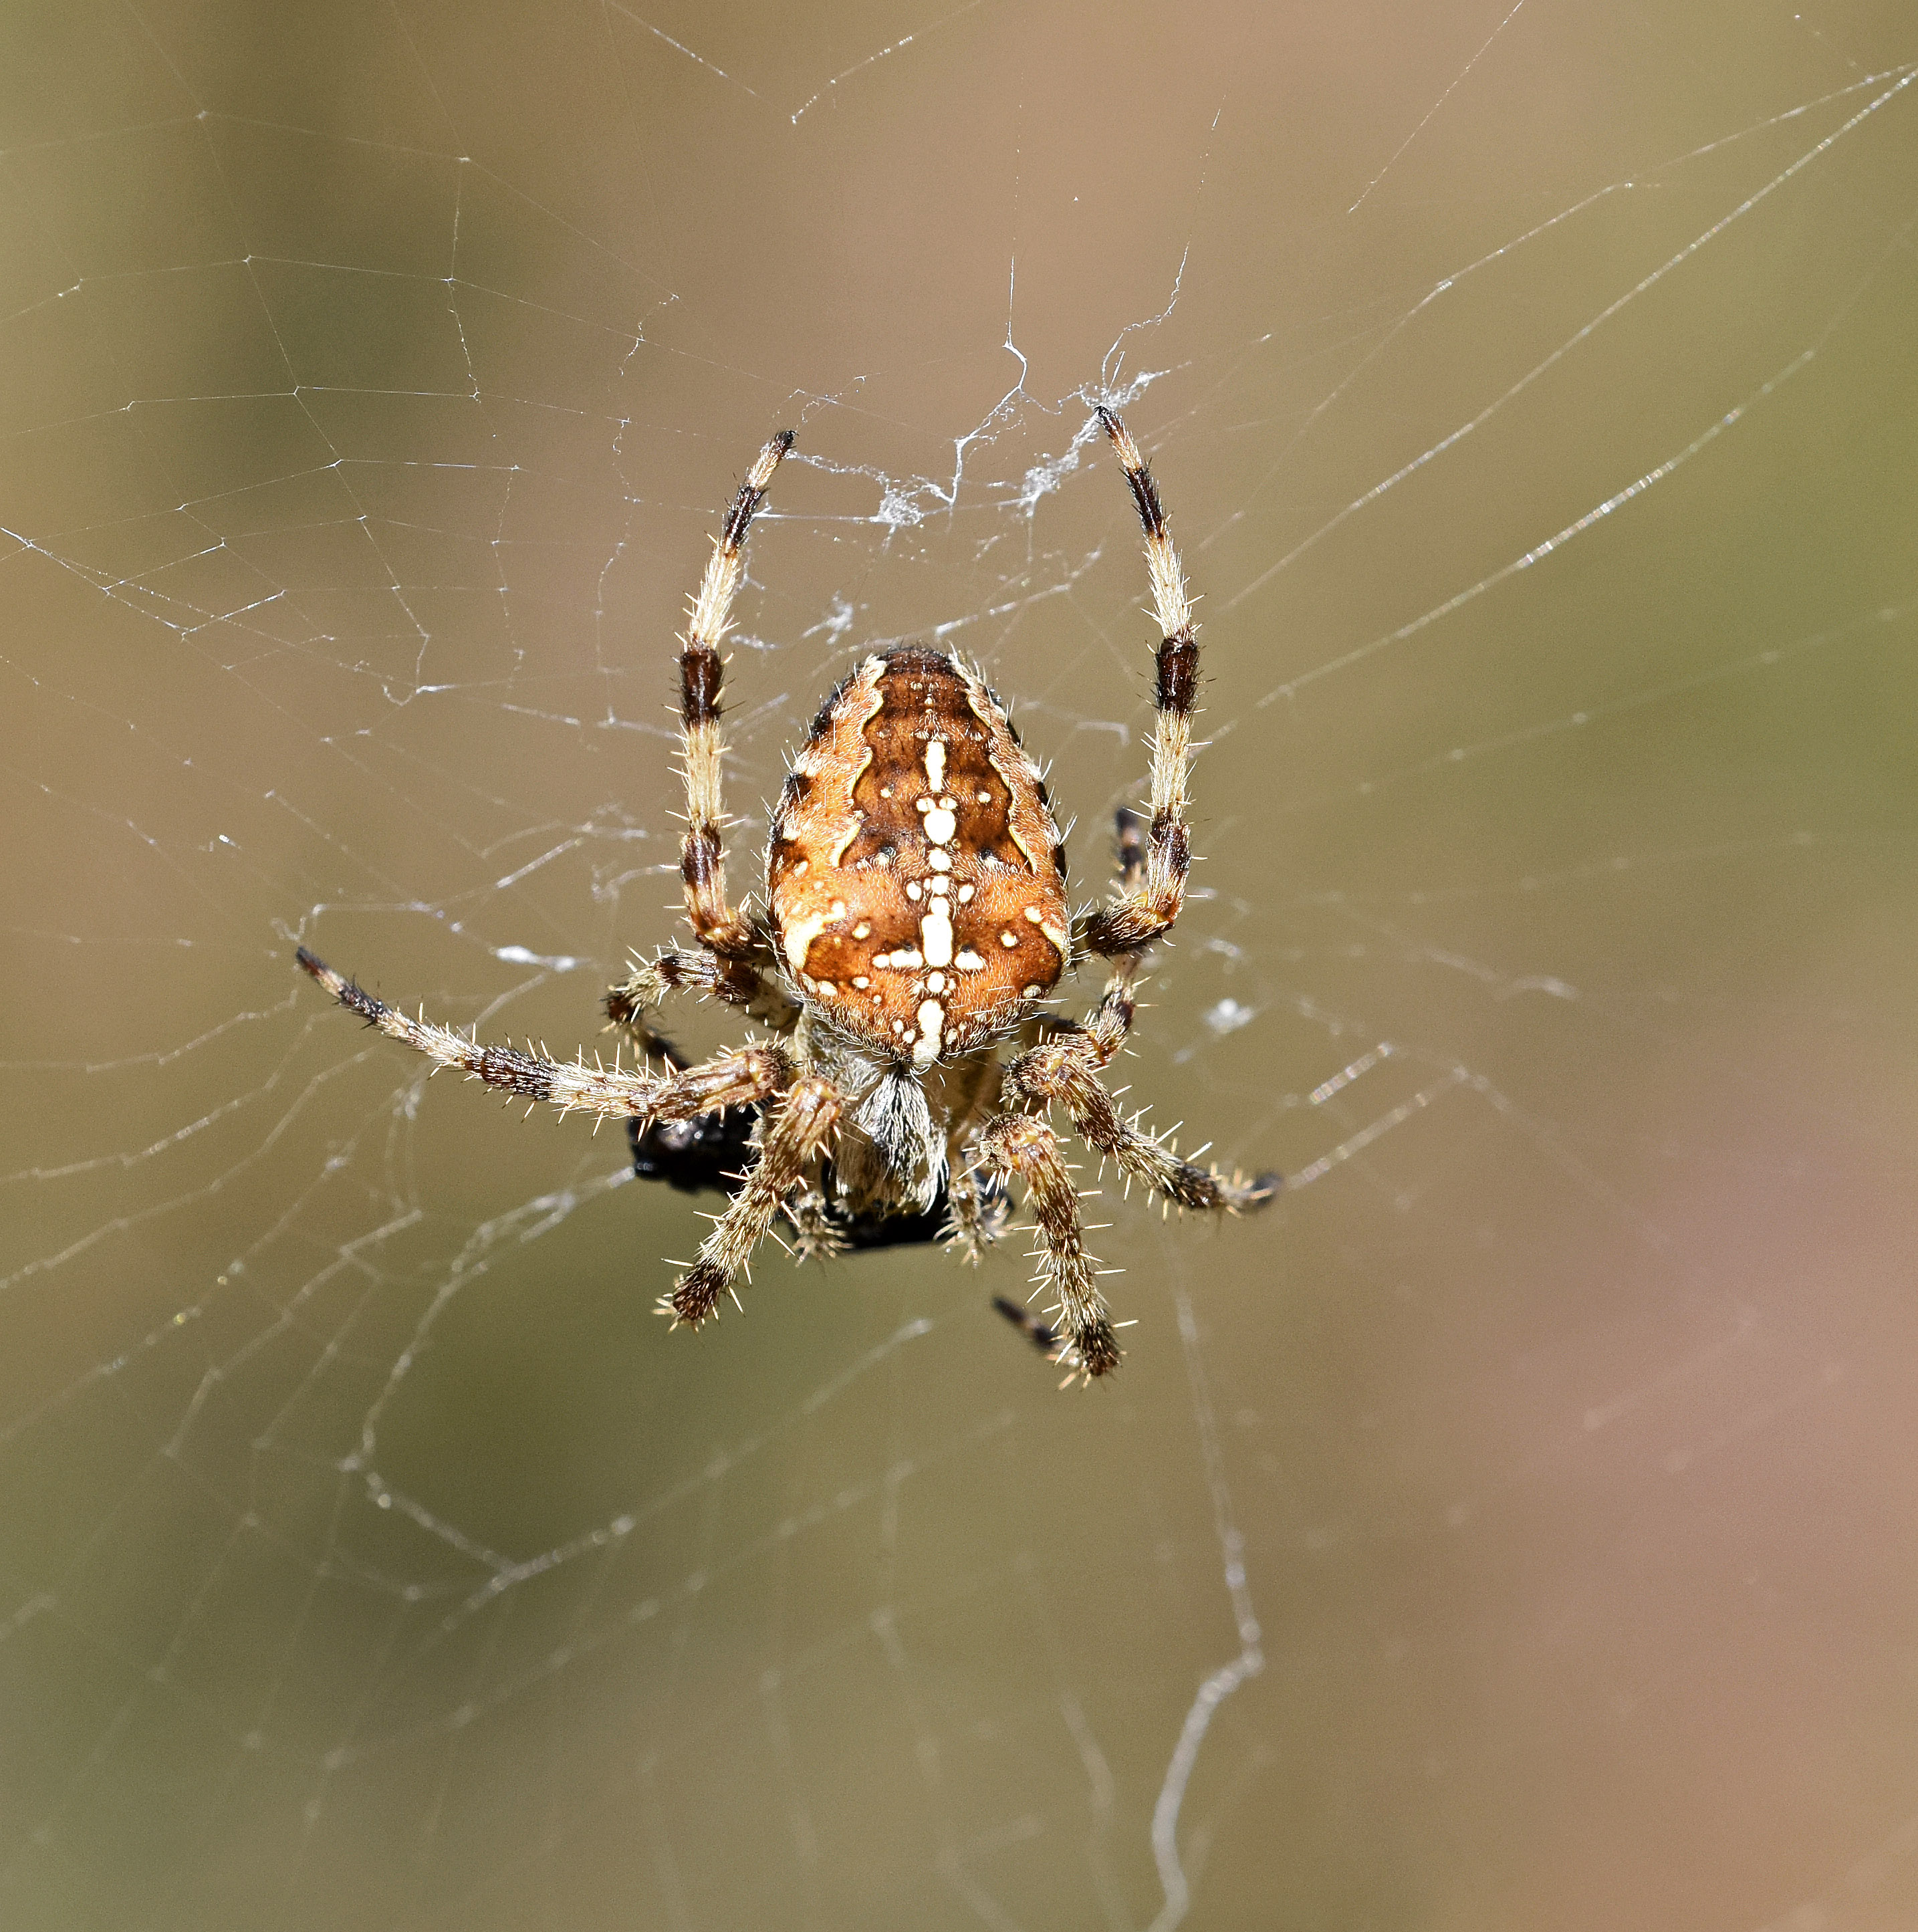 European Garden Spider (Araneus Diadematus) With Prey Wrapped